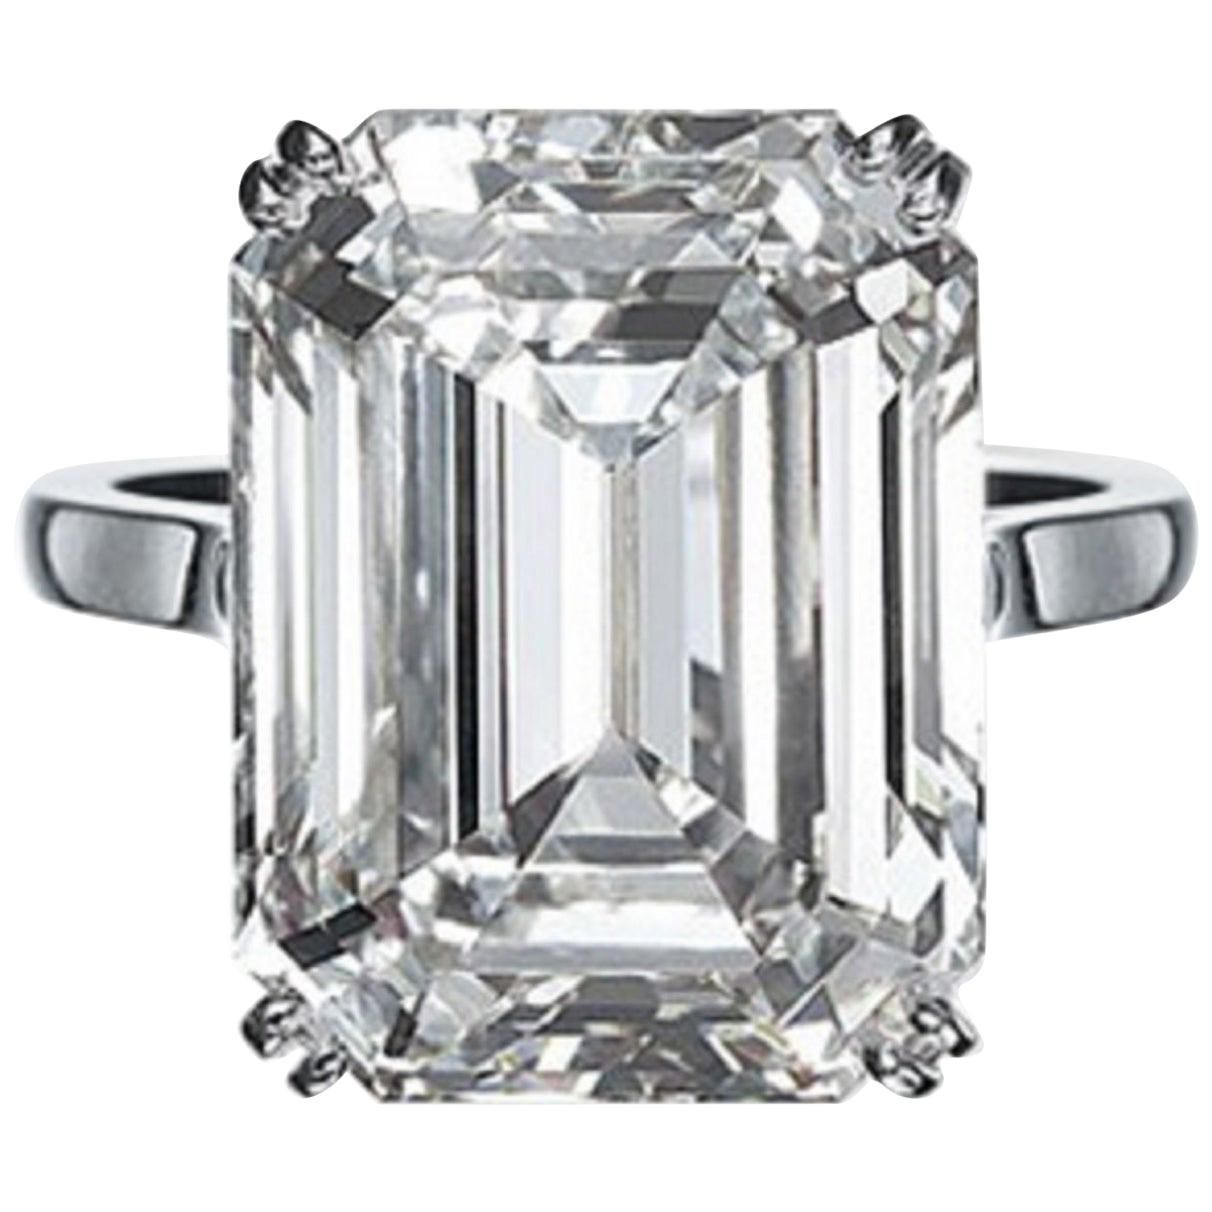 GIA Certified 8.67 Carat Emerald Cut Diamond Ring VVS1 Clarity